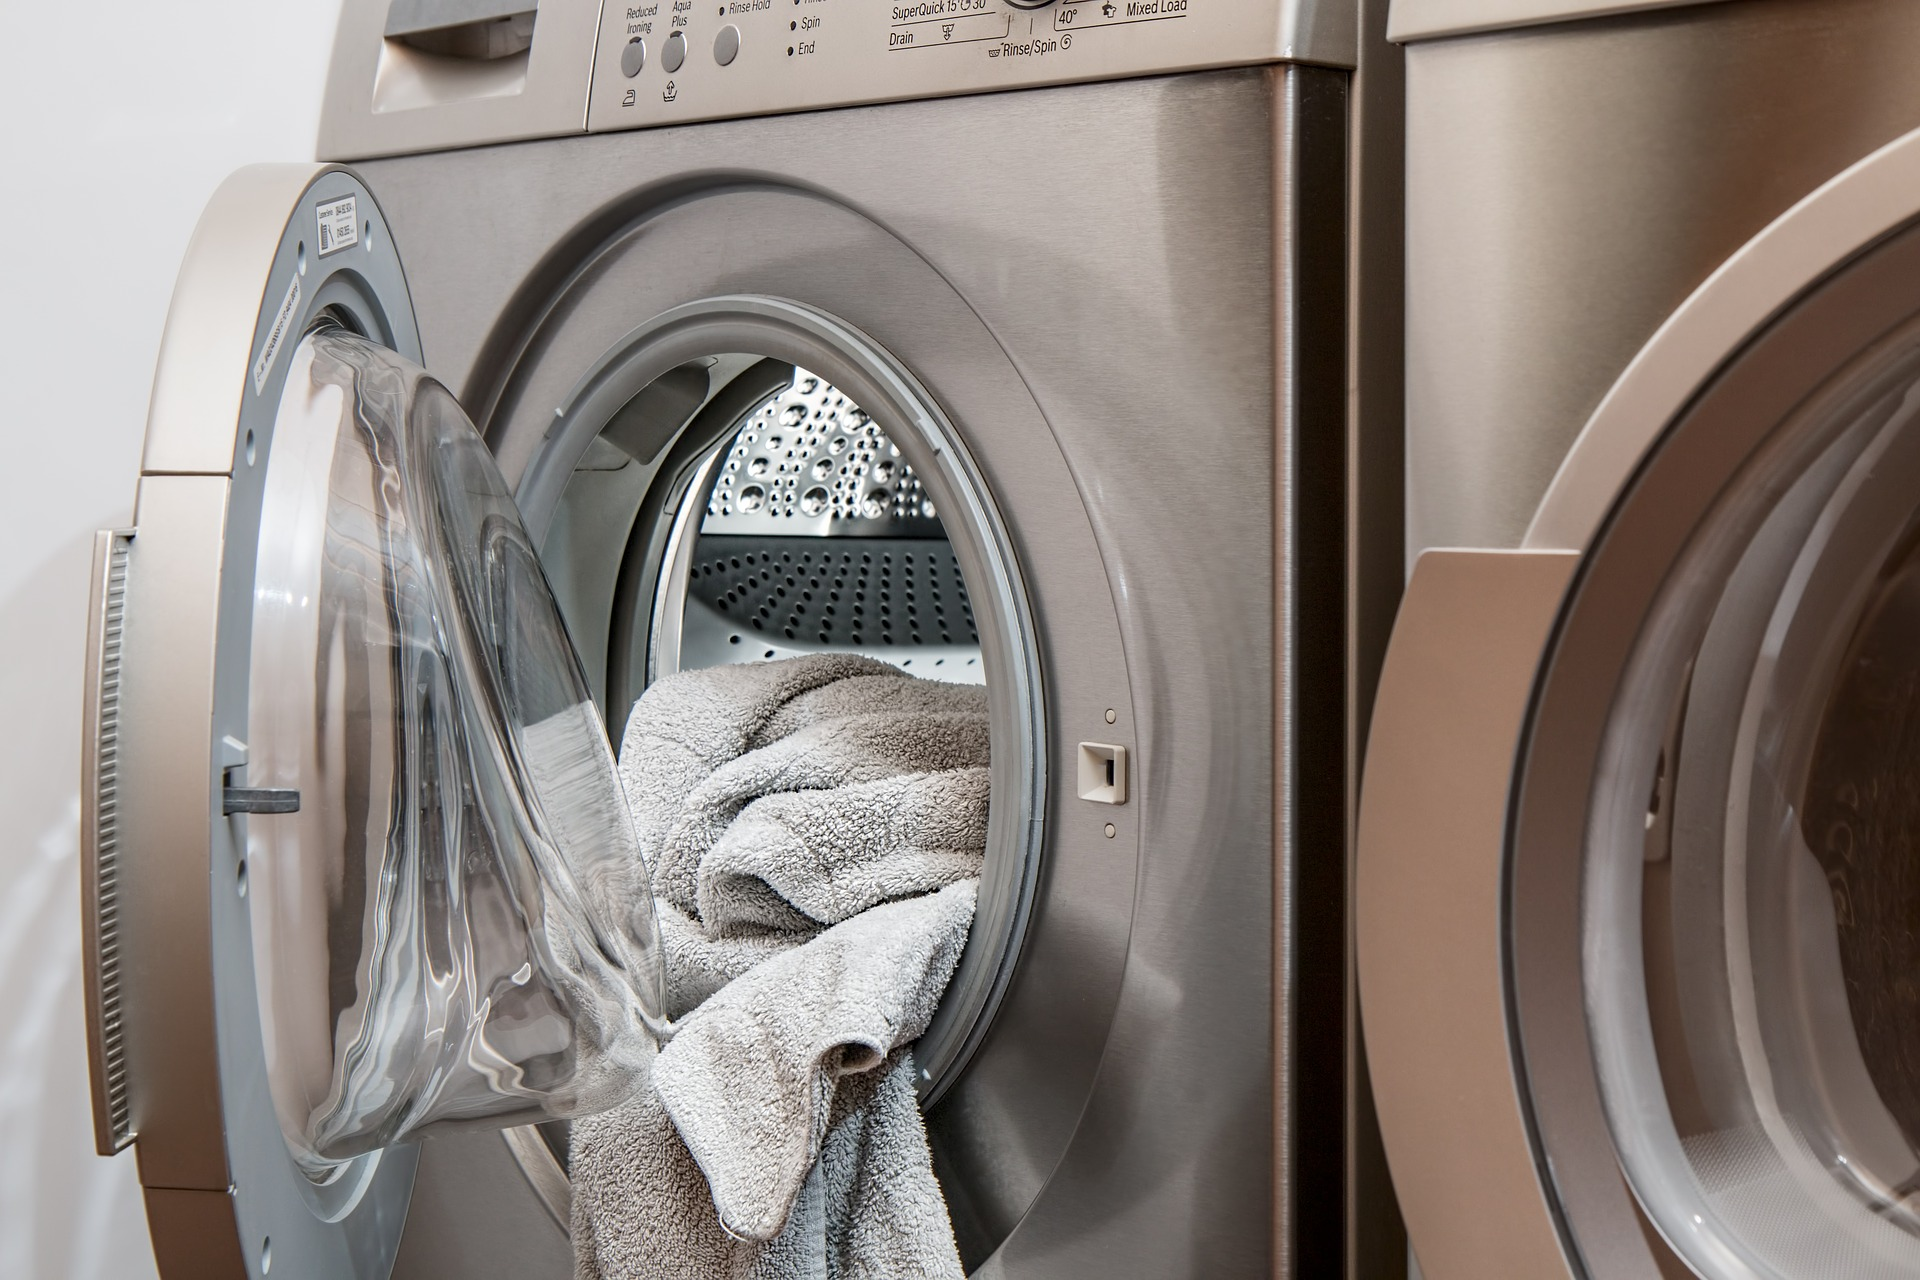 laundry machine smells like sewer gas while running